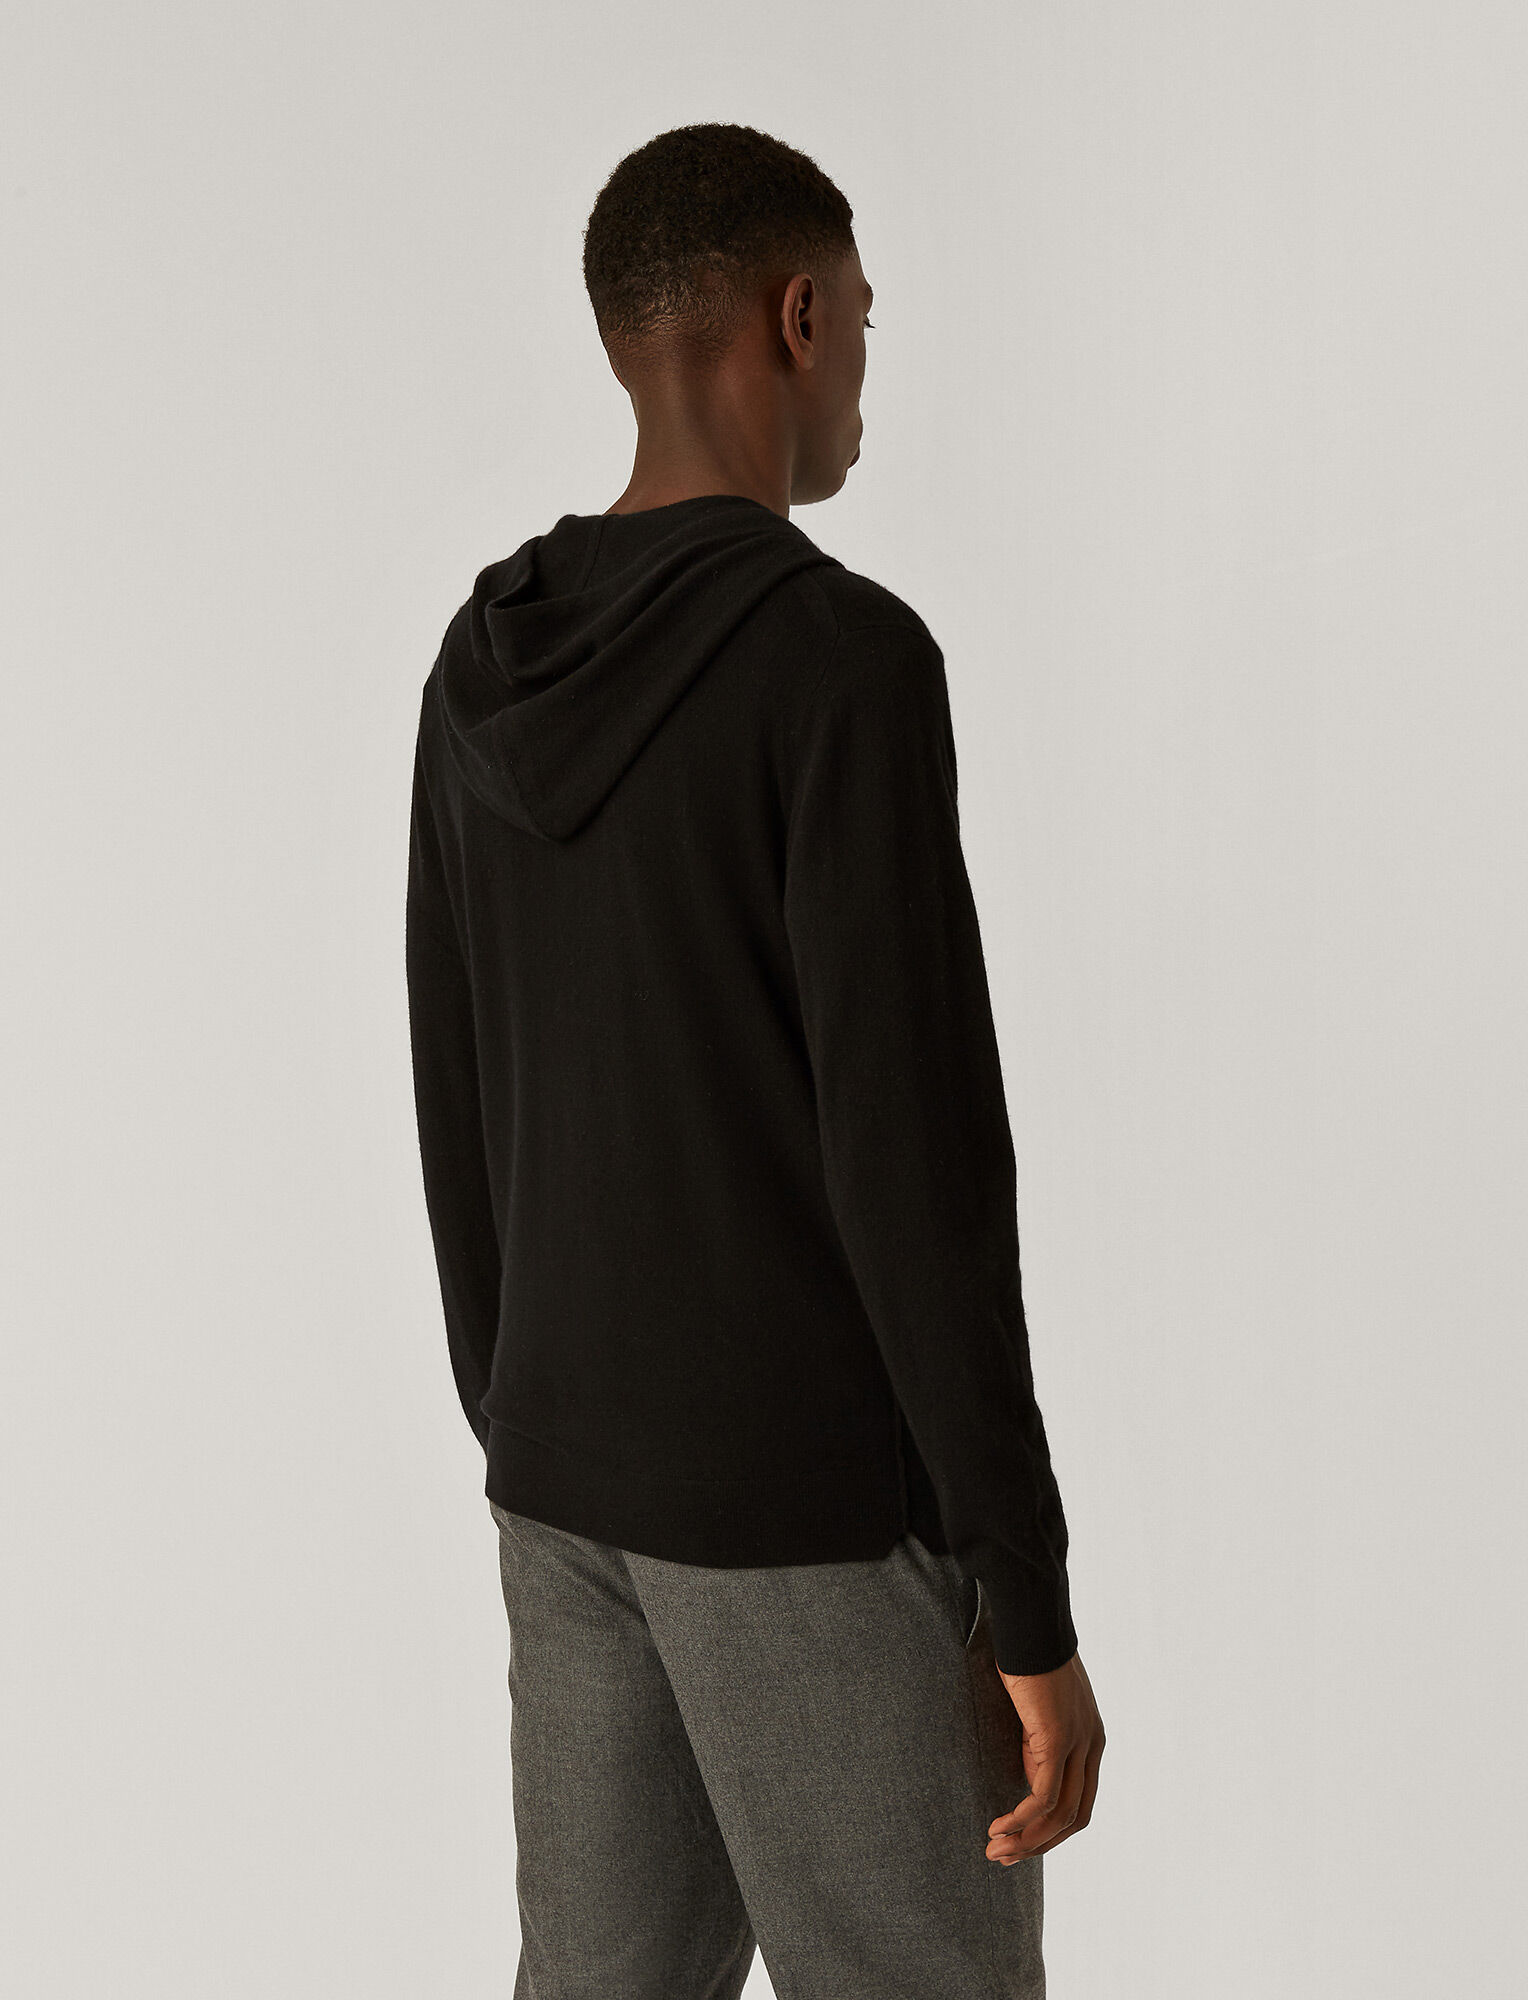 Joseph, Hoodie Cashmere Knit, in Black